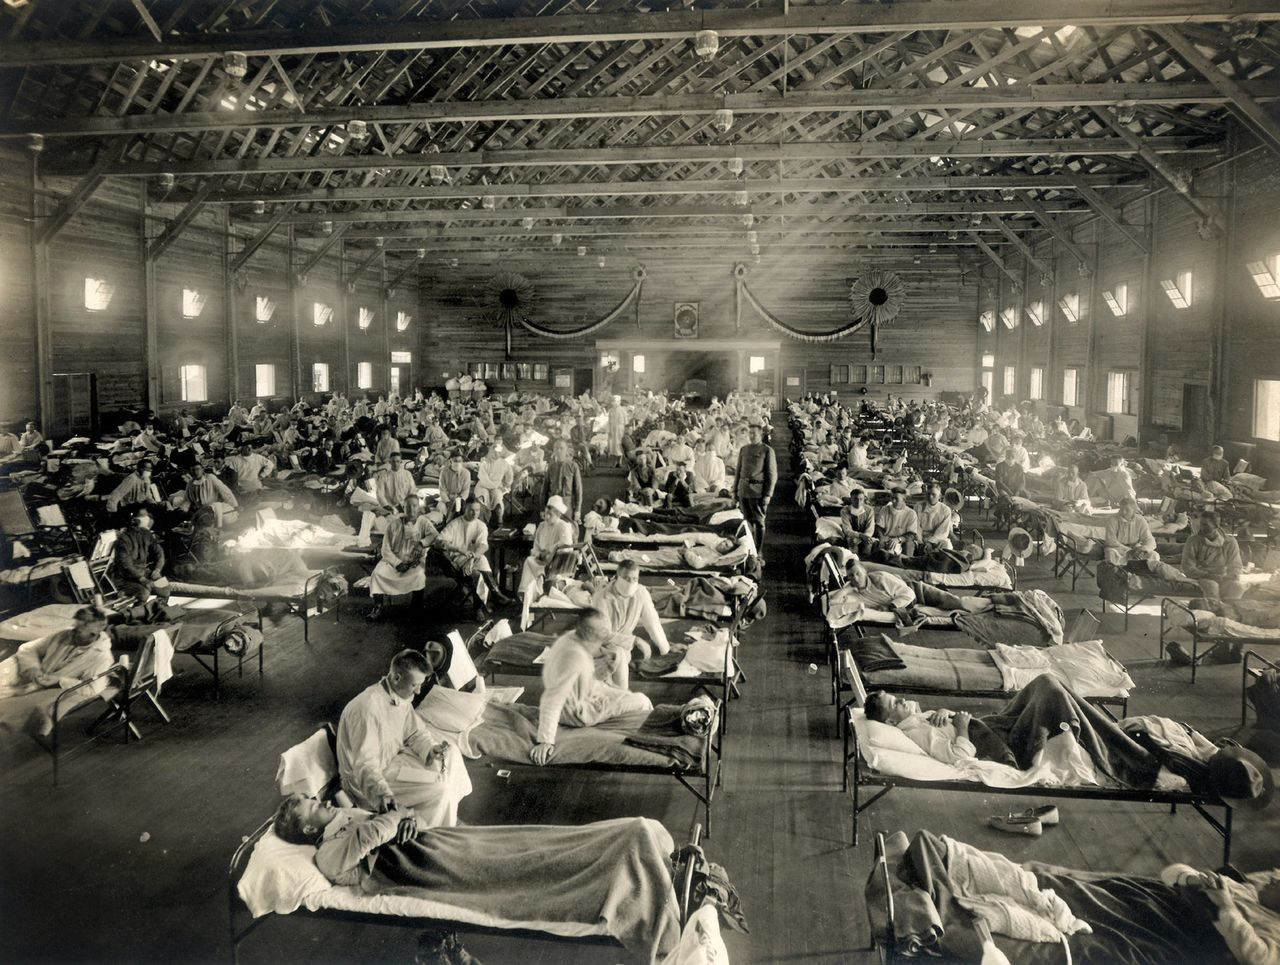 A temporary hospital ward set up at the US Army's Camp Funston in Kansas, which was considered the epicenter of the global Spanish flu pandemic. (© Science Photo Library/Aflo)